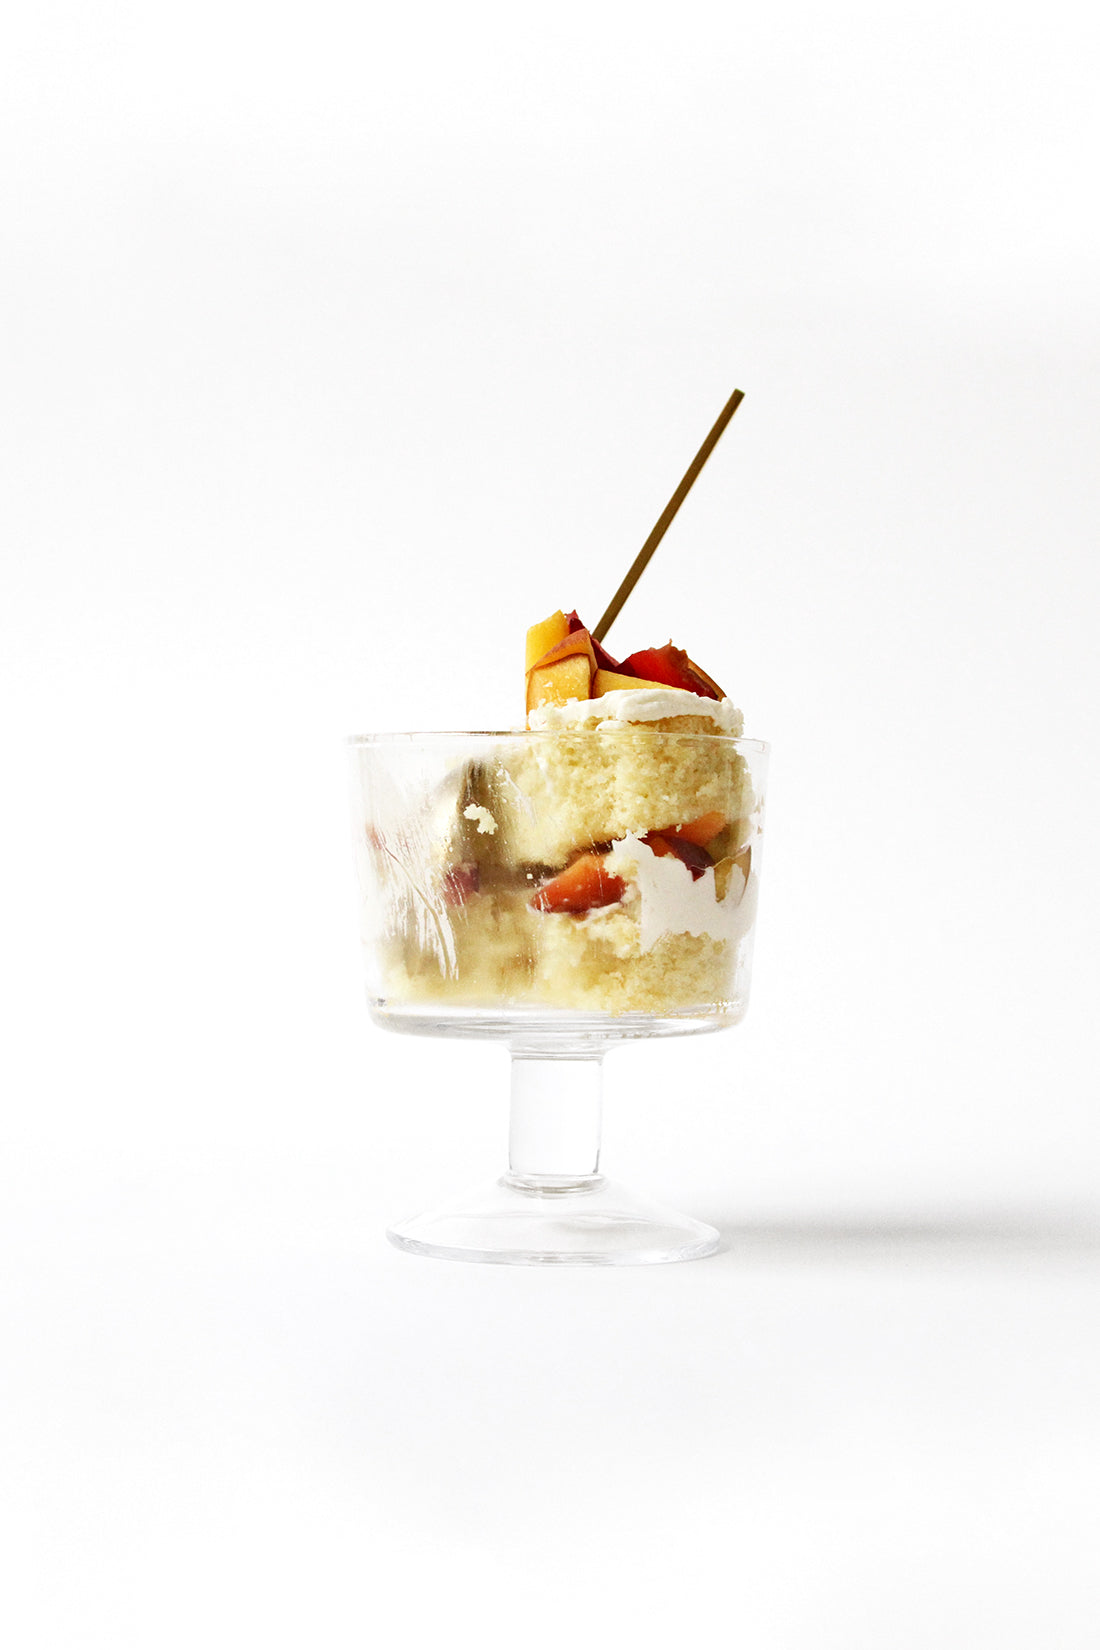 Image from the side of a partly eaten Miss Jones Baking Co Stone Fruit Shortcake